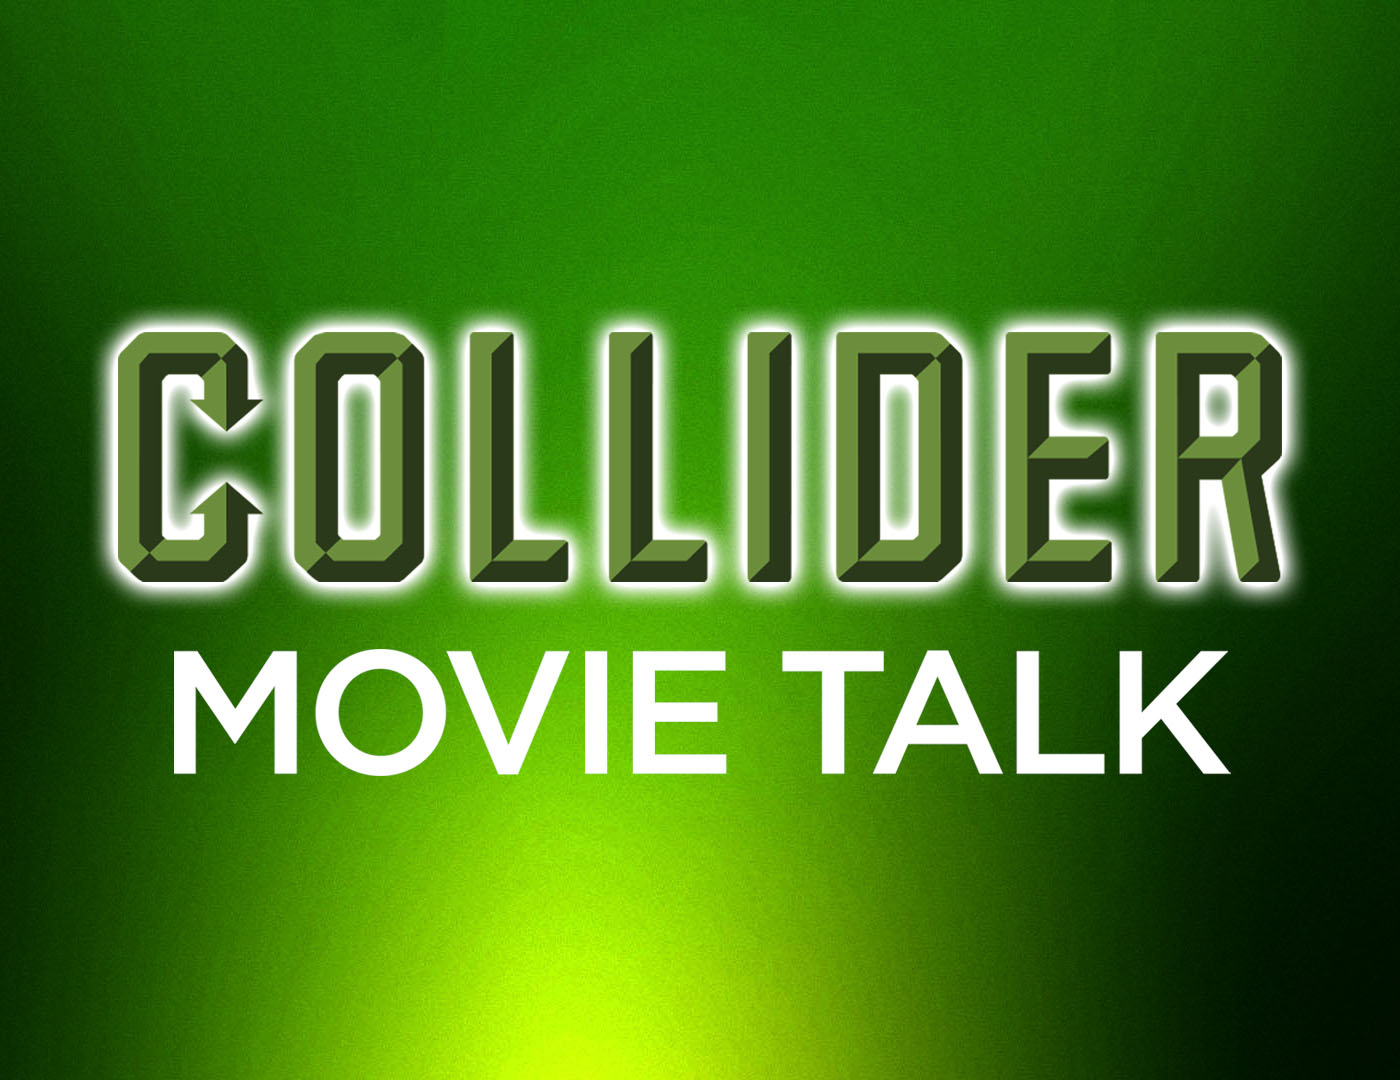 Super Bowl Trailers Revealed? - Collider Movie Talk